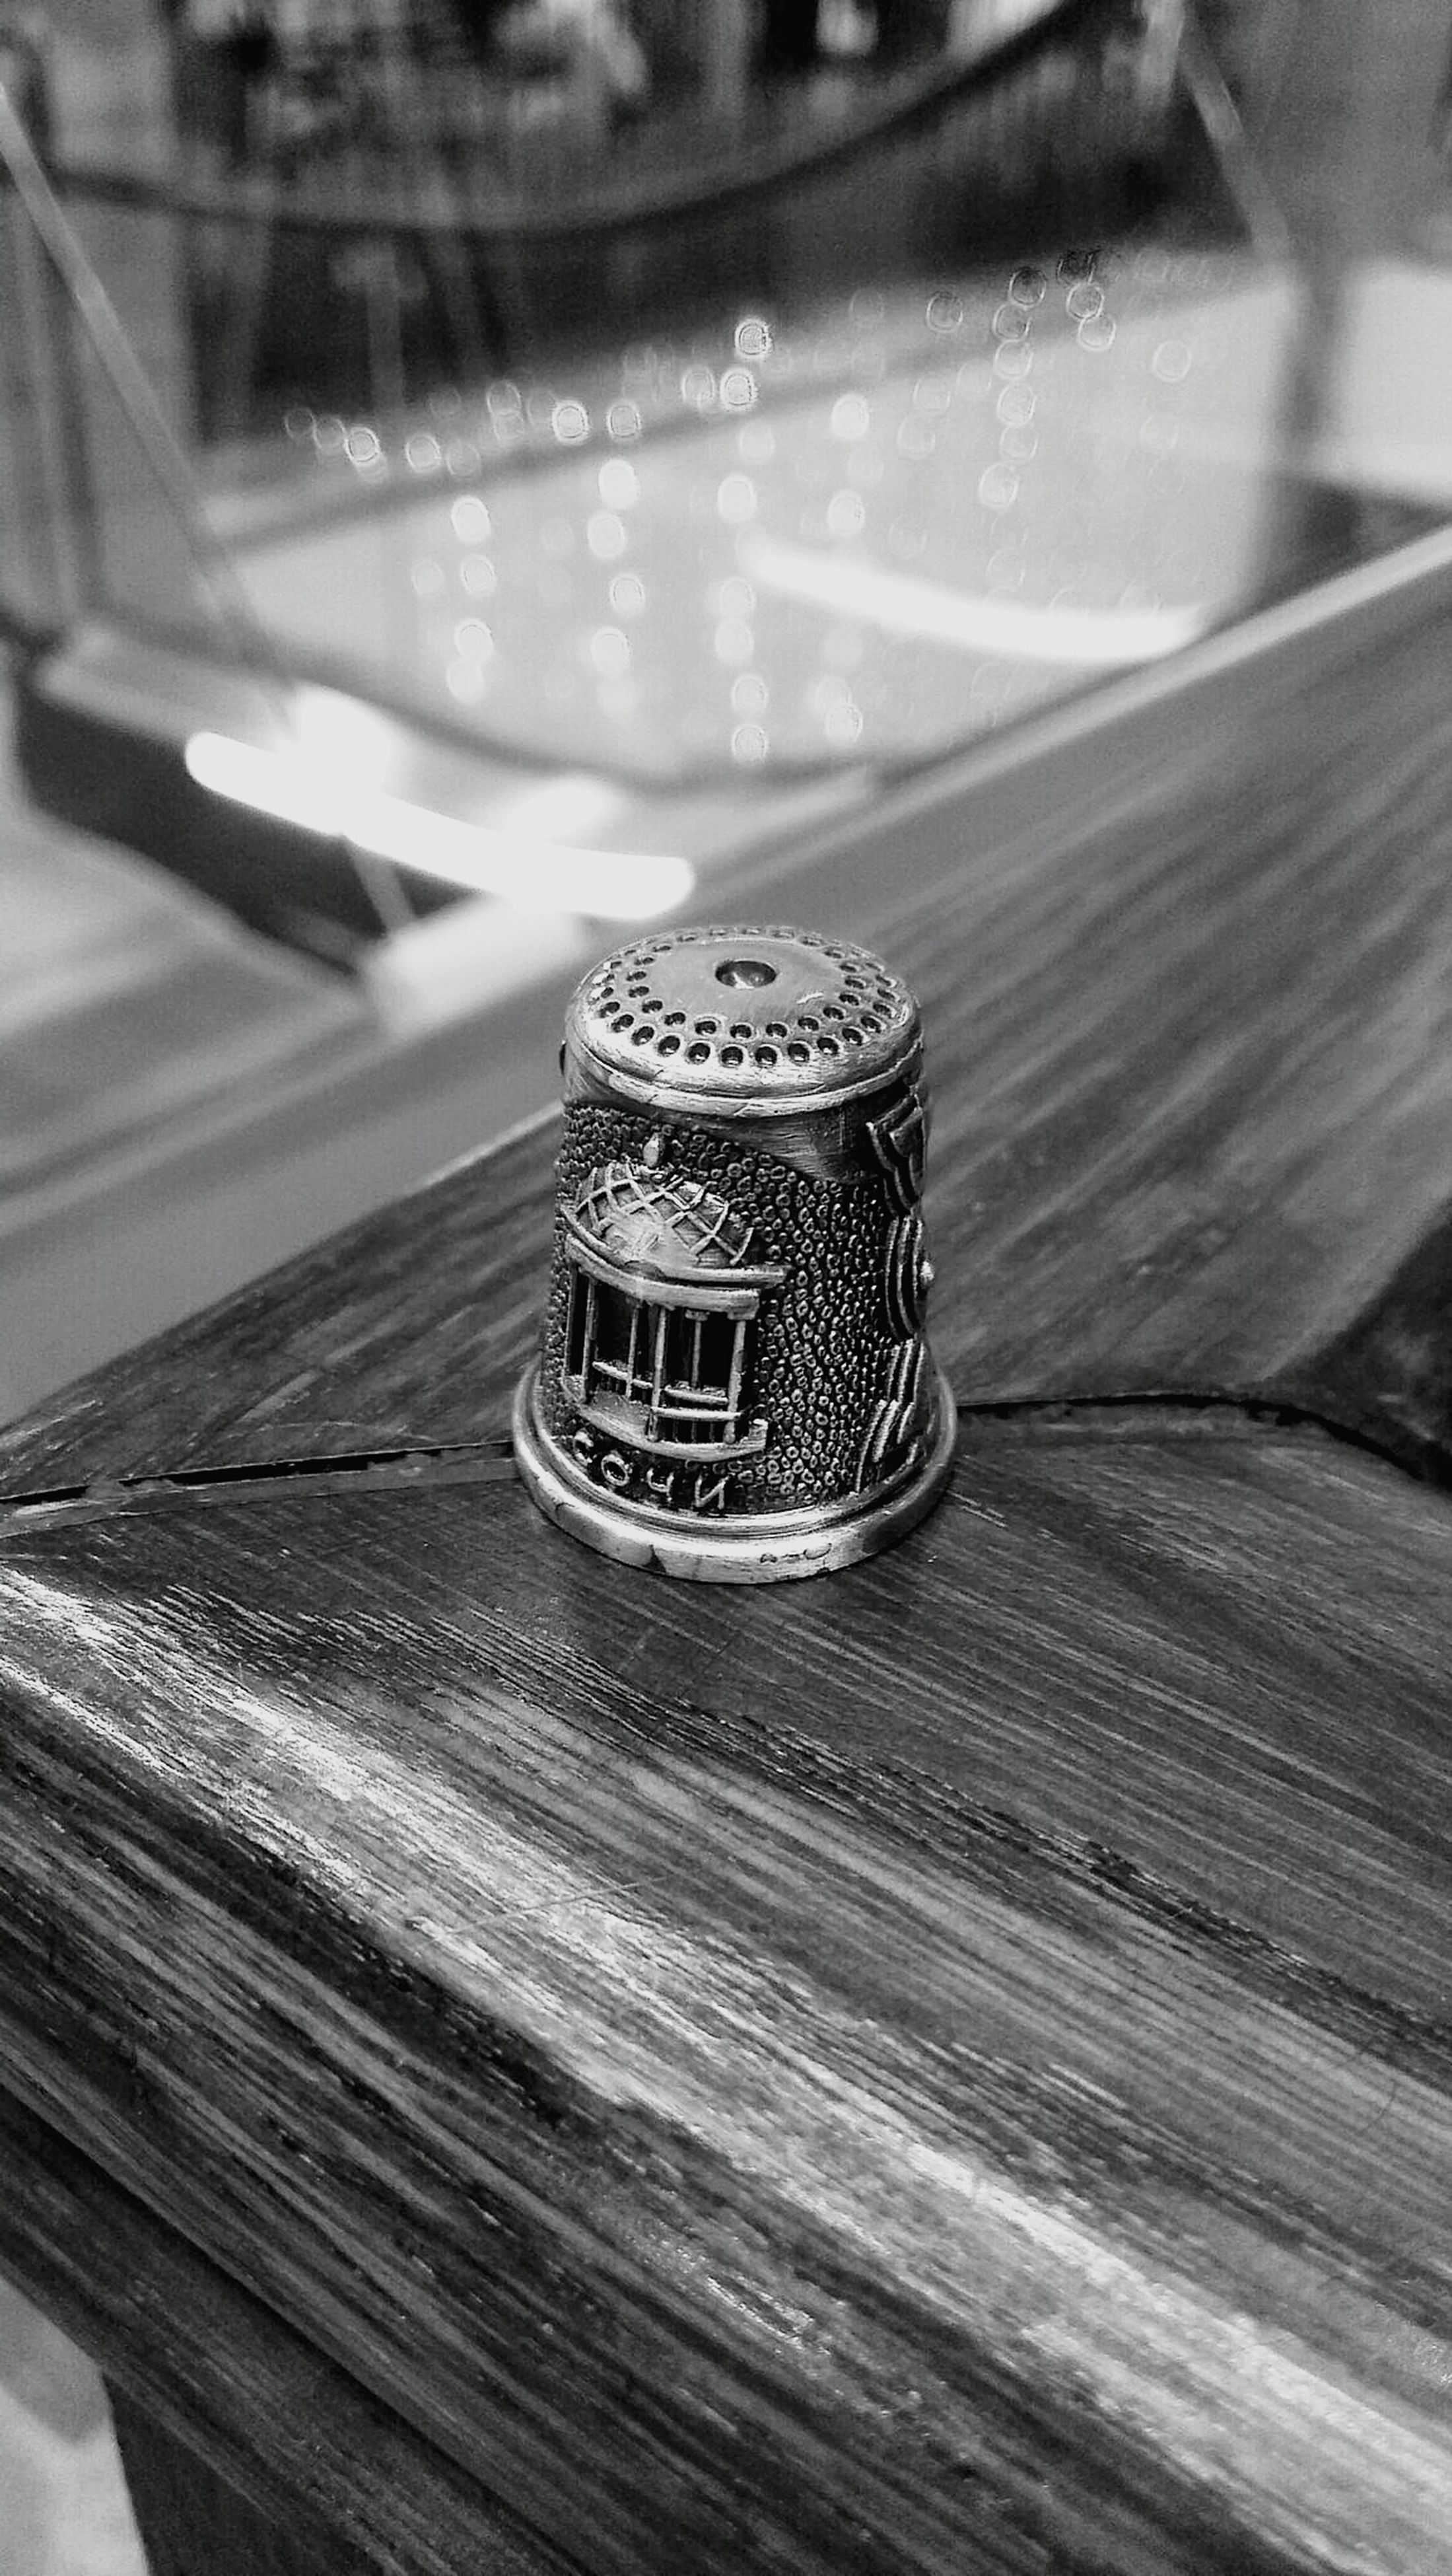 wood - material, close-up, focus on foreground, wooden, selective focus, table, indoors, no people, still life, day, transportation, wood, single object, metal, sunlight, plank, pattern, textured, high angle view